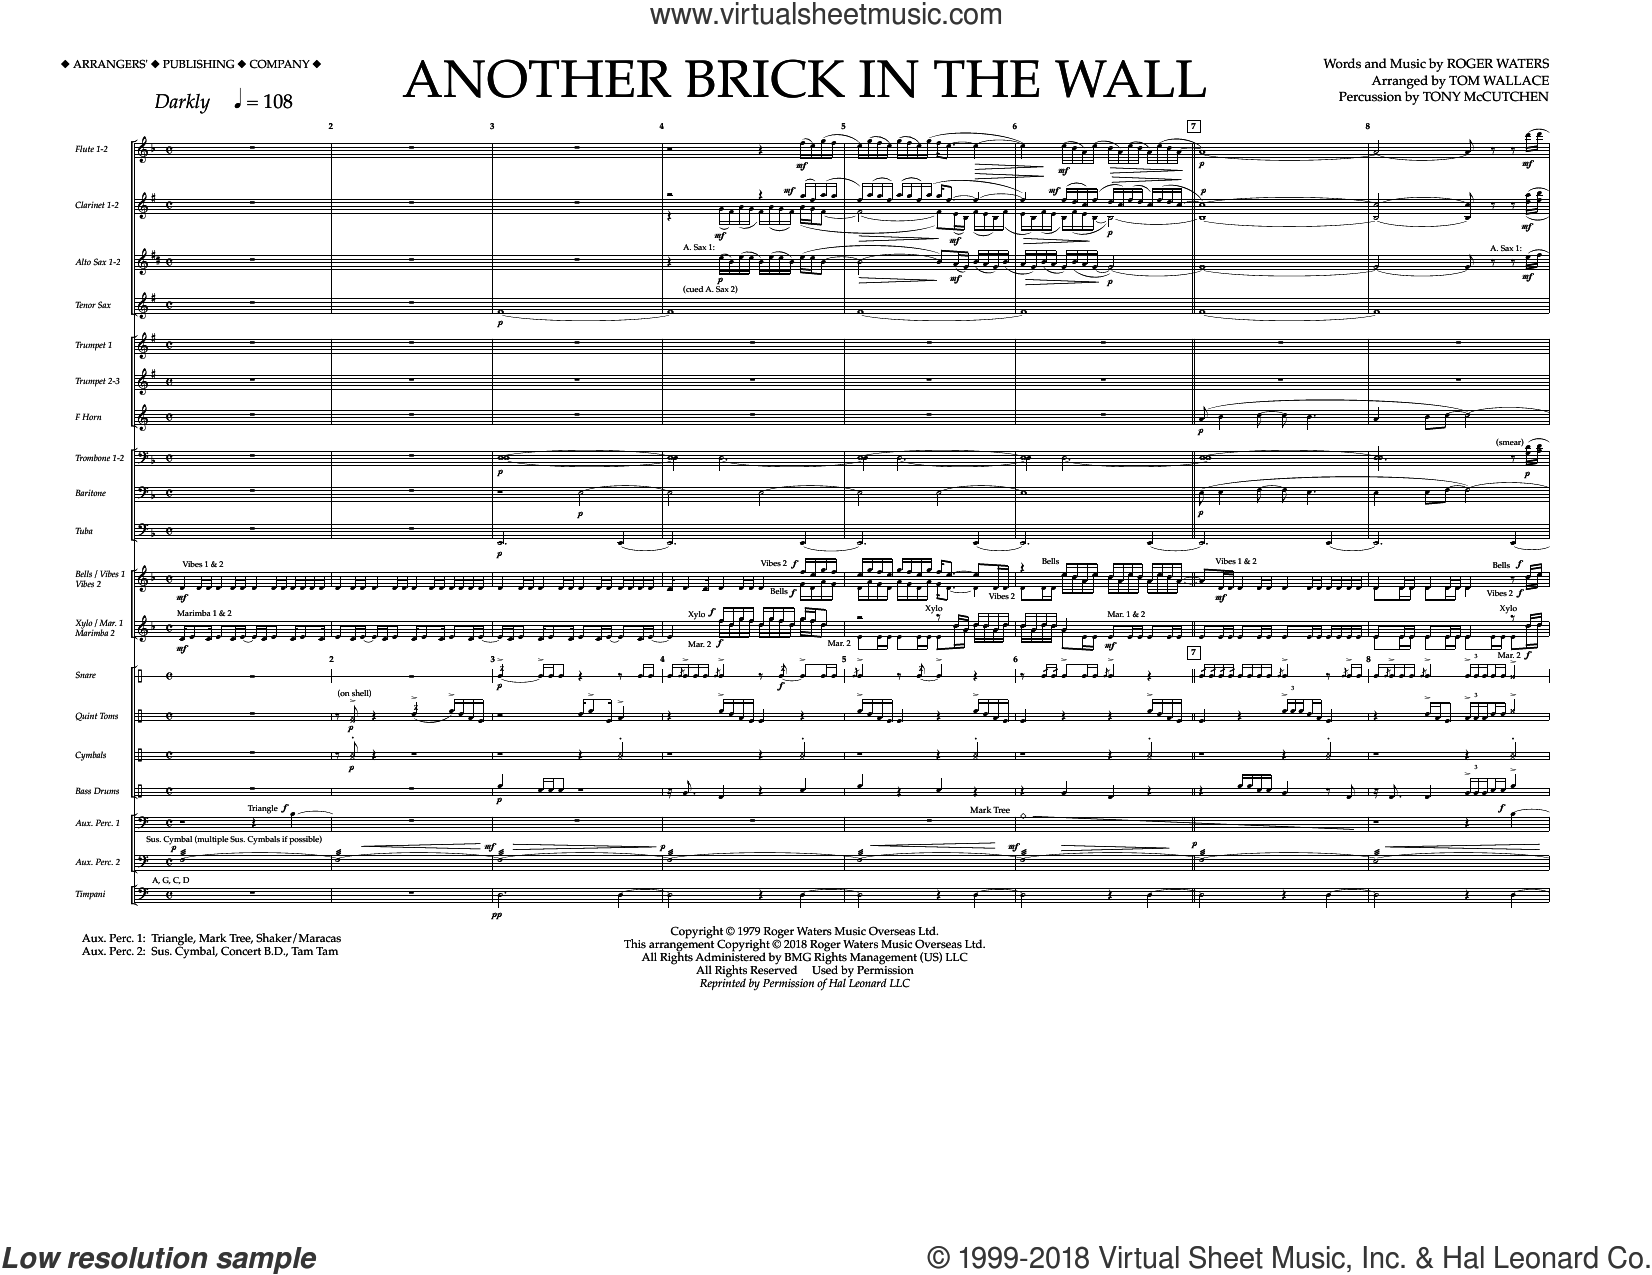 Another Brick in the Wall (COMPLETE) sheet music for marching band by Pink Floyd, Roger Waters and Tom Wallace, intermediate skill level